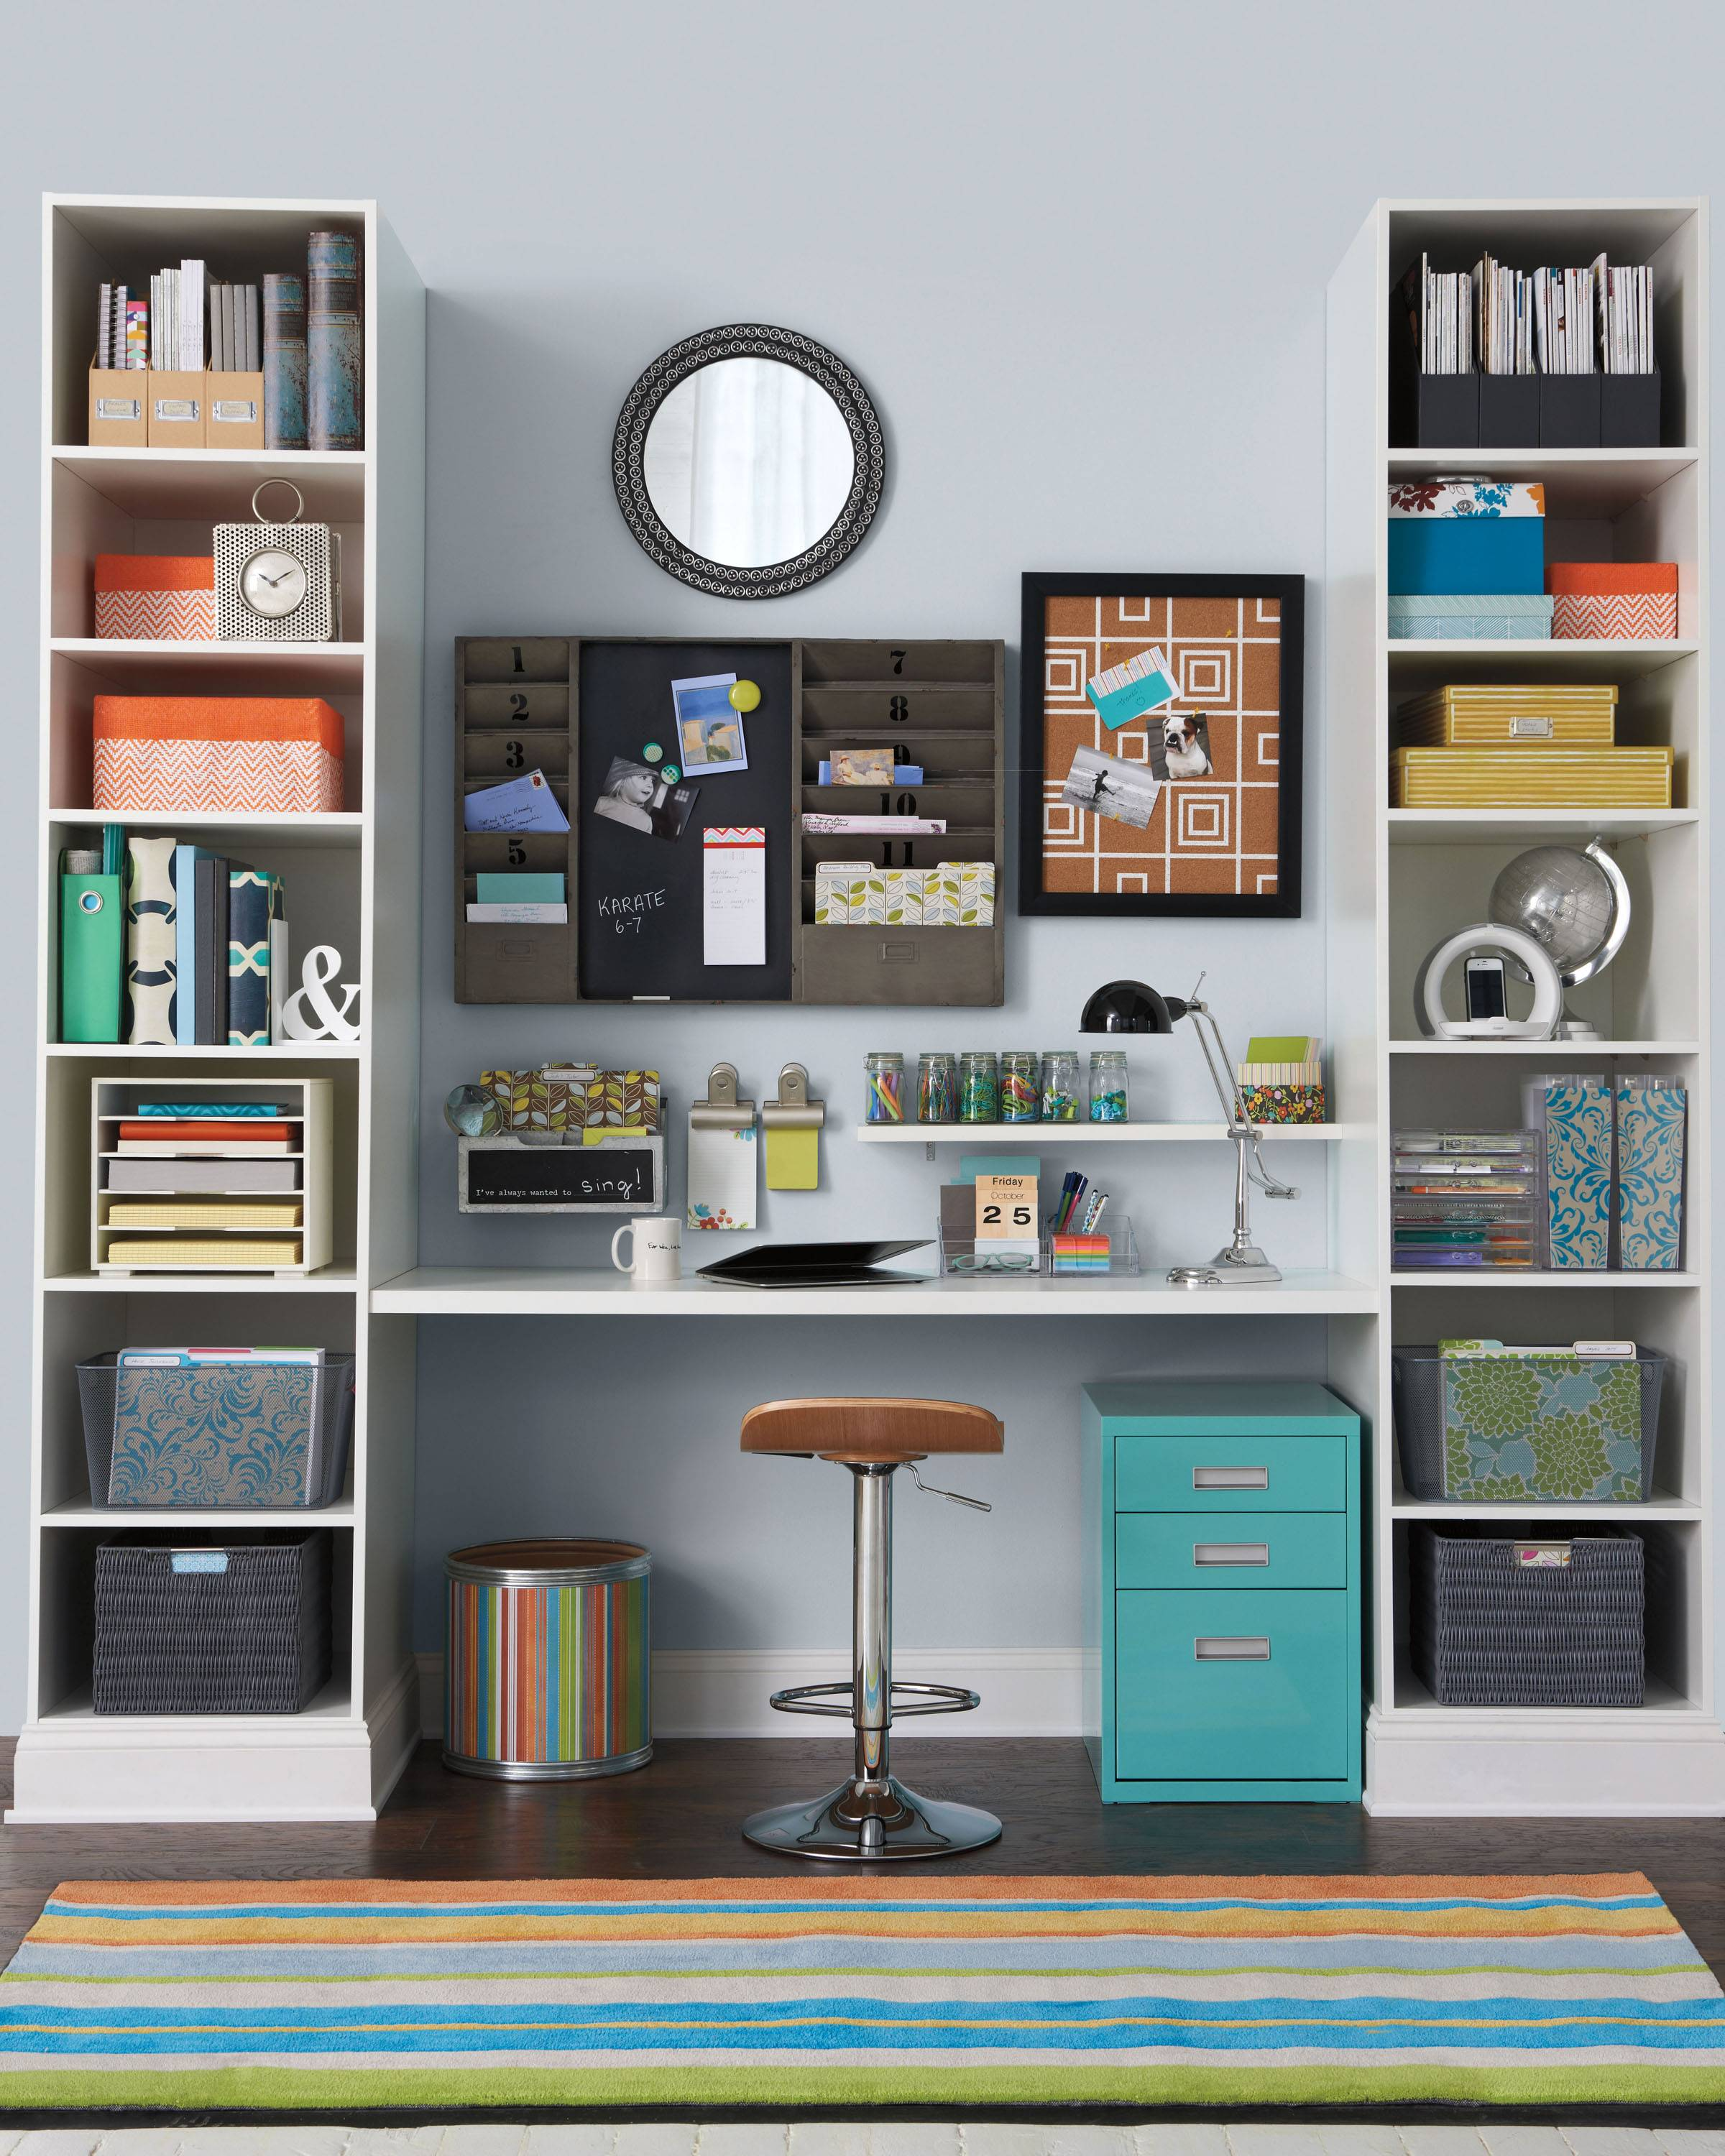 A teal blue file cabinet and striped rug add extra pops of color to a plain white room. This work space is organized with baskets and bins.